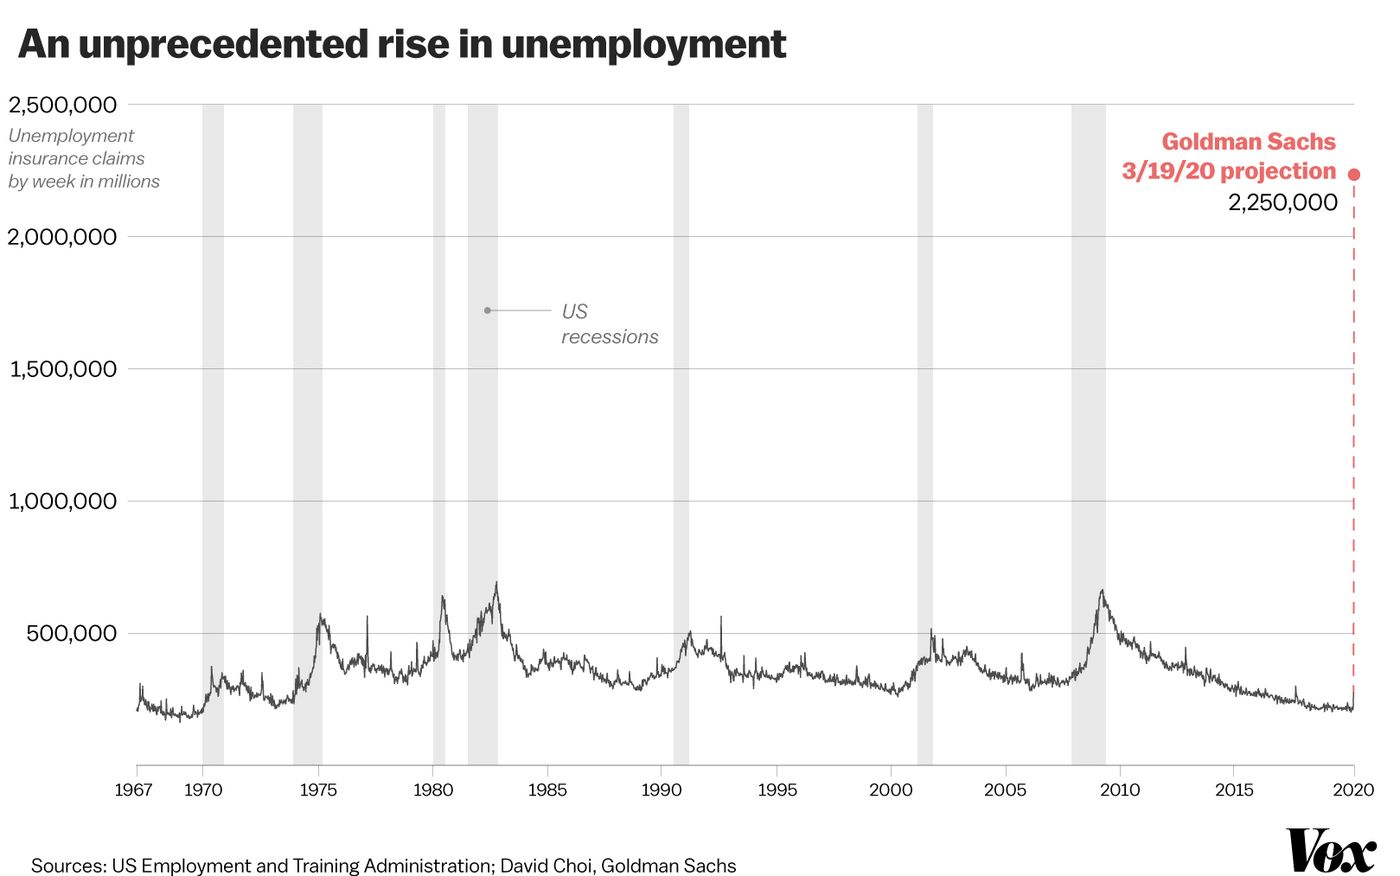 Goldman Sachs Unemployment Estimates